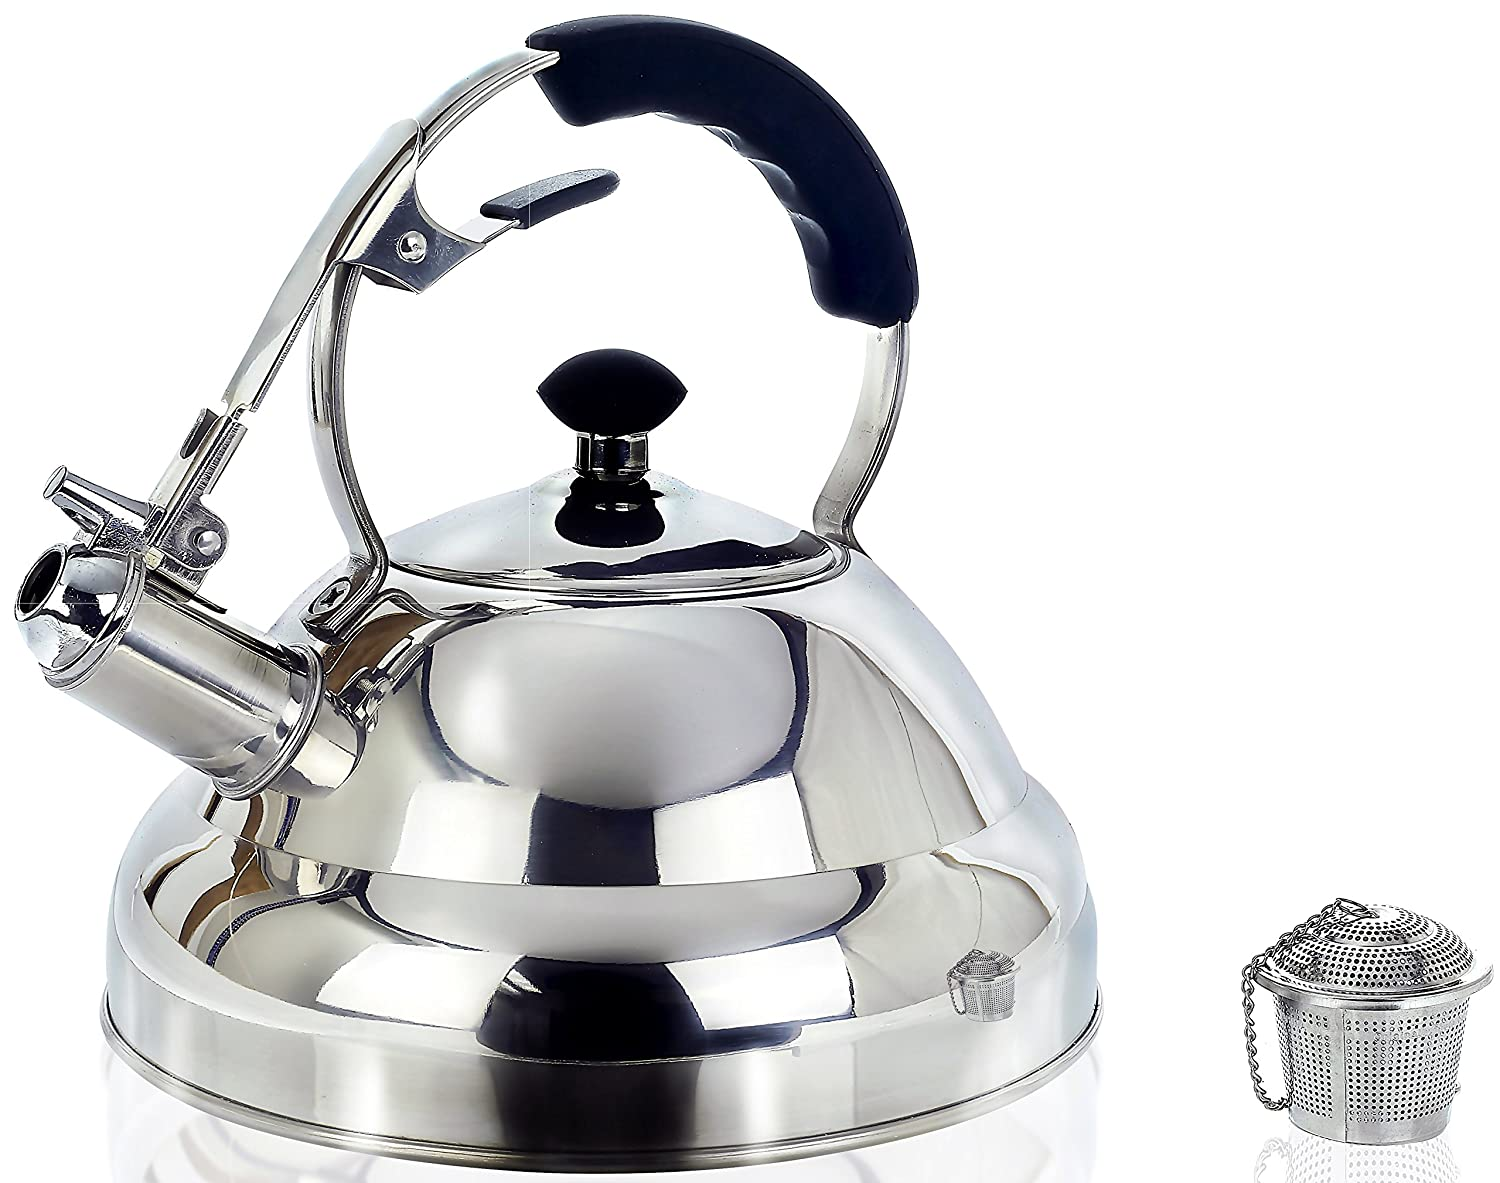 Surgical Stainless Steel Whistling Tea Kettle